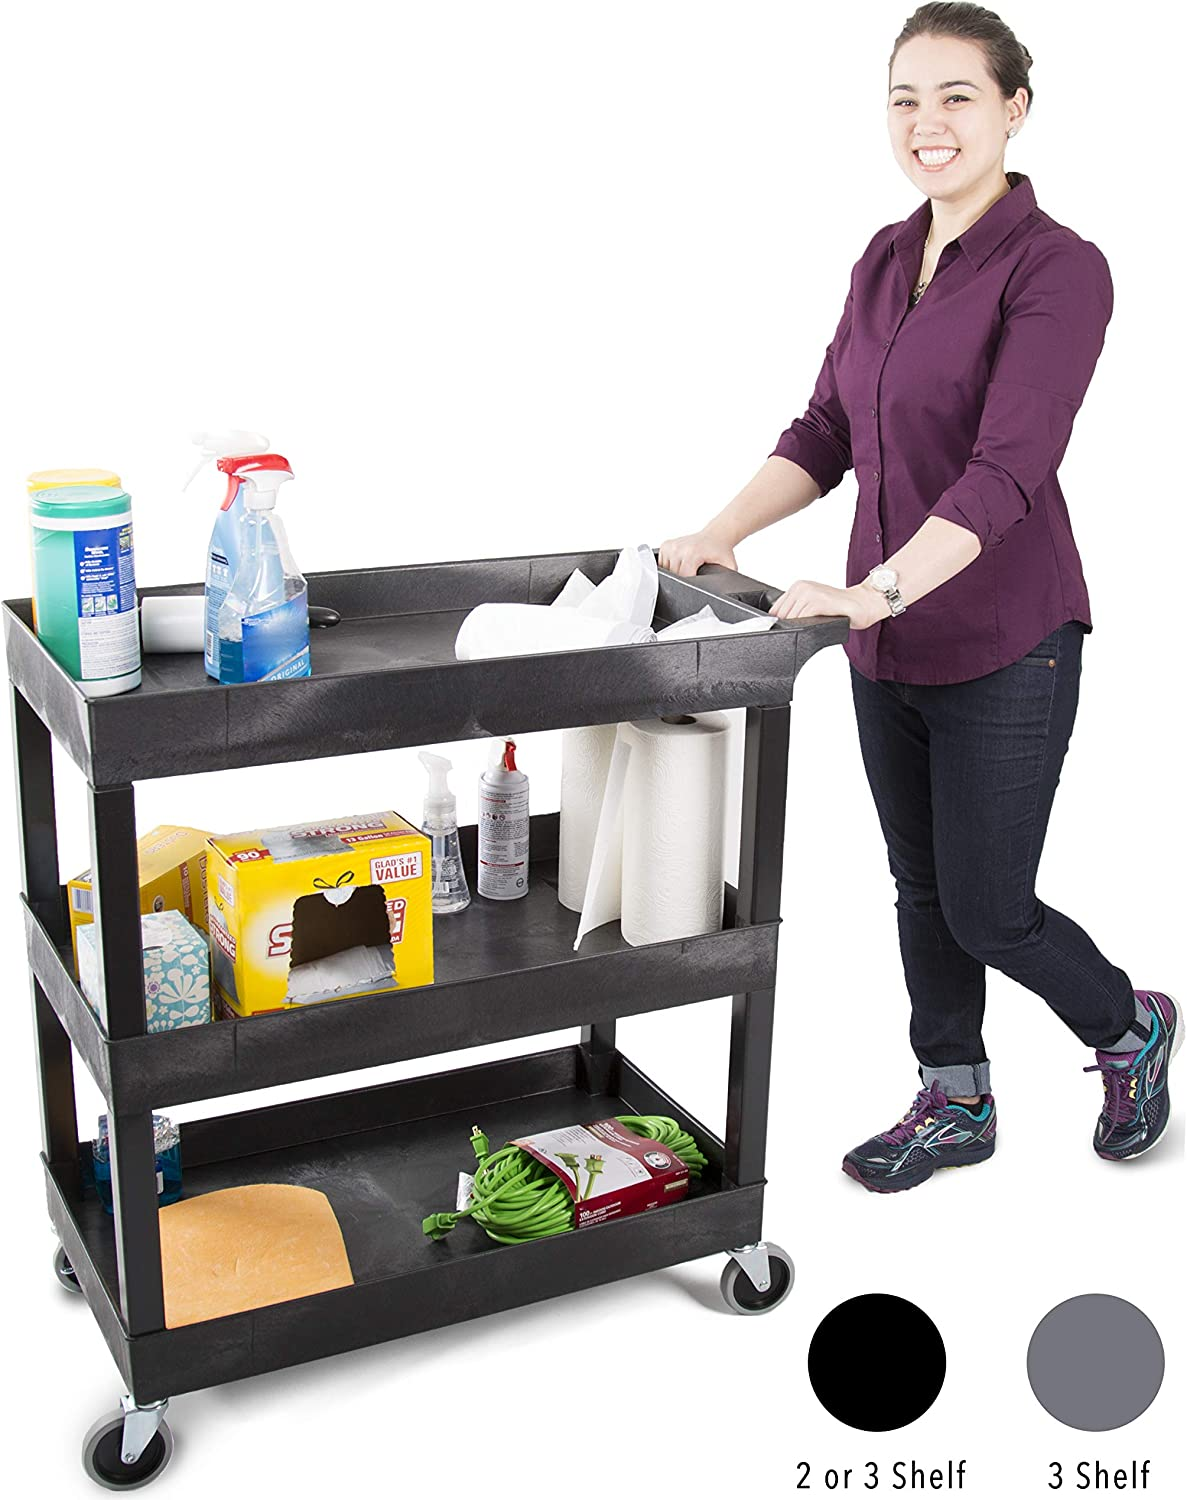 Original Tubstr 3 Shelf Utility Cart Service Cart – Heavy Duty – Supports up to 400 lbs – Tub Carts w Deep Shelves – Great for Warehouse, Garage, Cleaning and More 3 Shelf – 32 x 18 Black